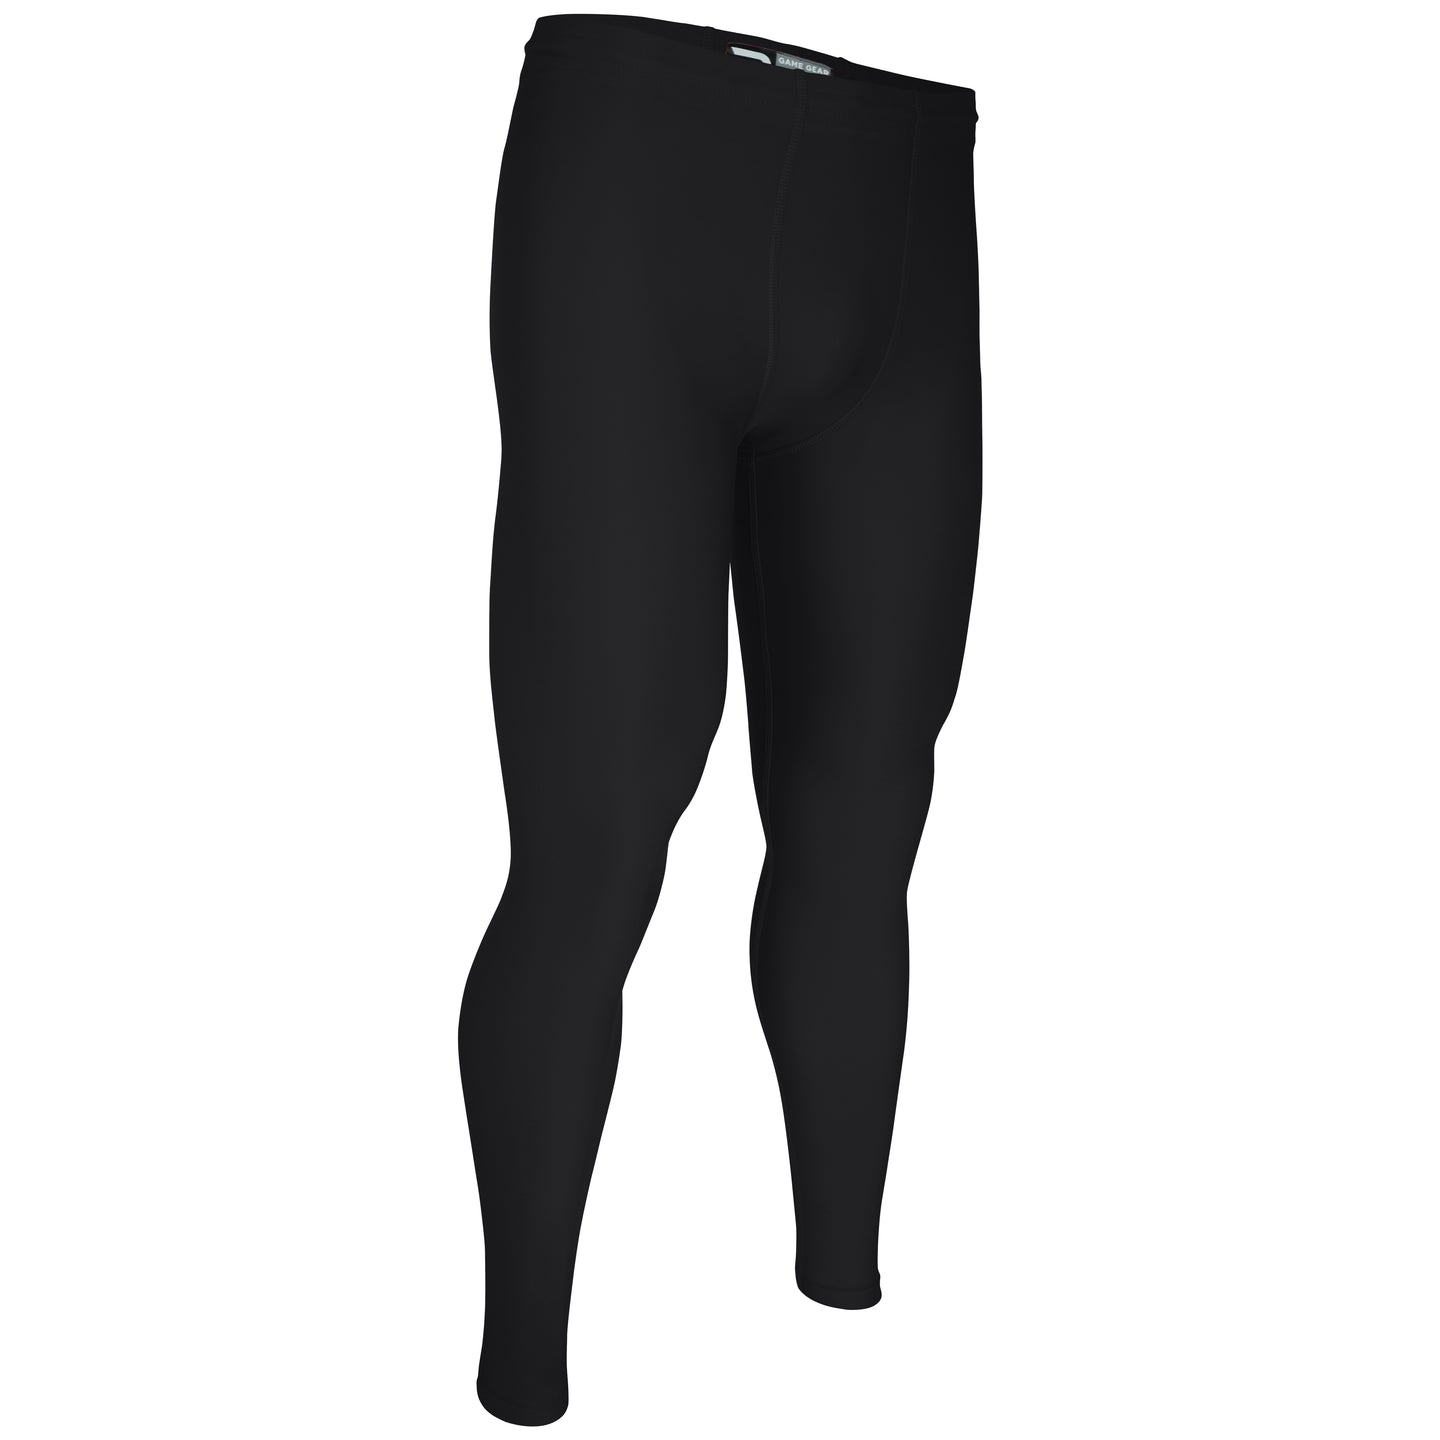 HT-120J-CB Men's Heat Tech Training Ankle Length Sport Tight w/ Draw Cord